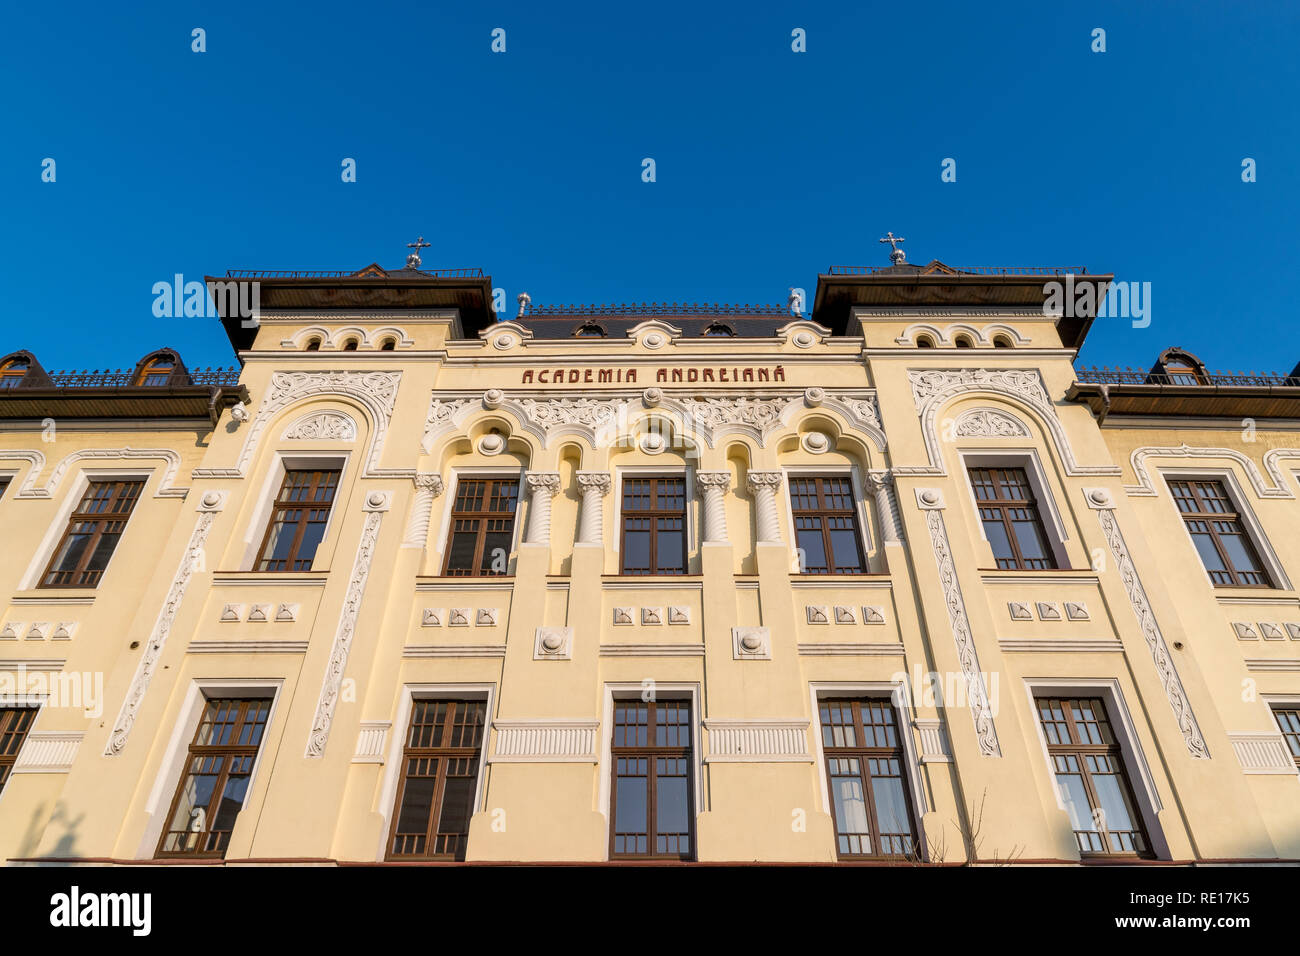 The building of Academia Andreiana, part of the Faculty of Teological studies in Sibiu, Romania. - Stock Image